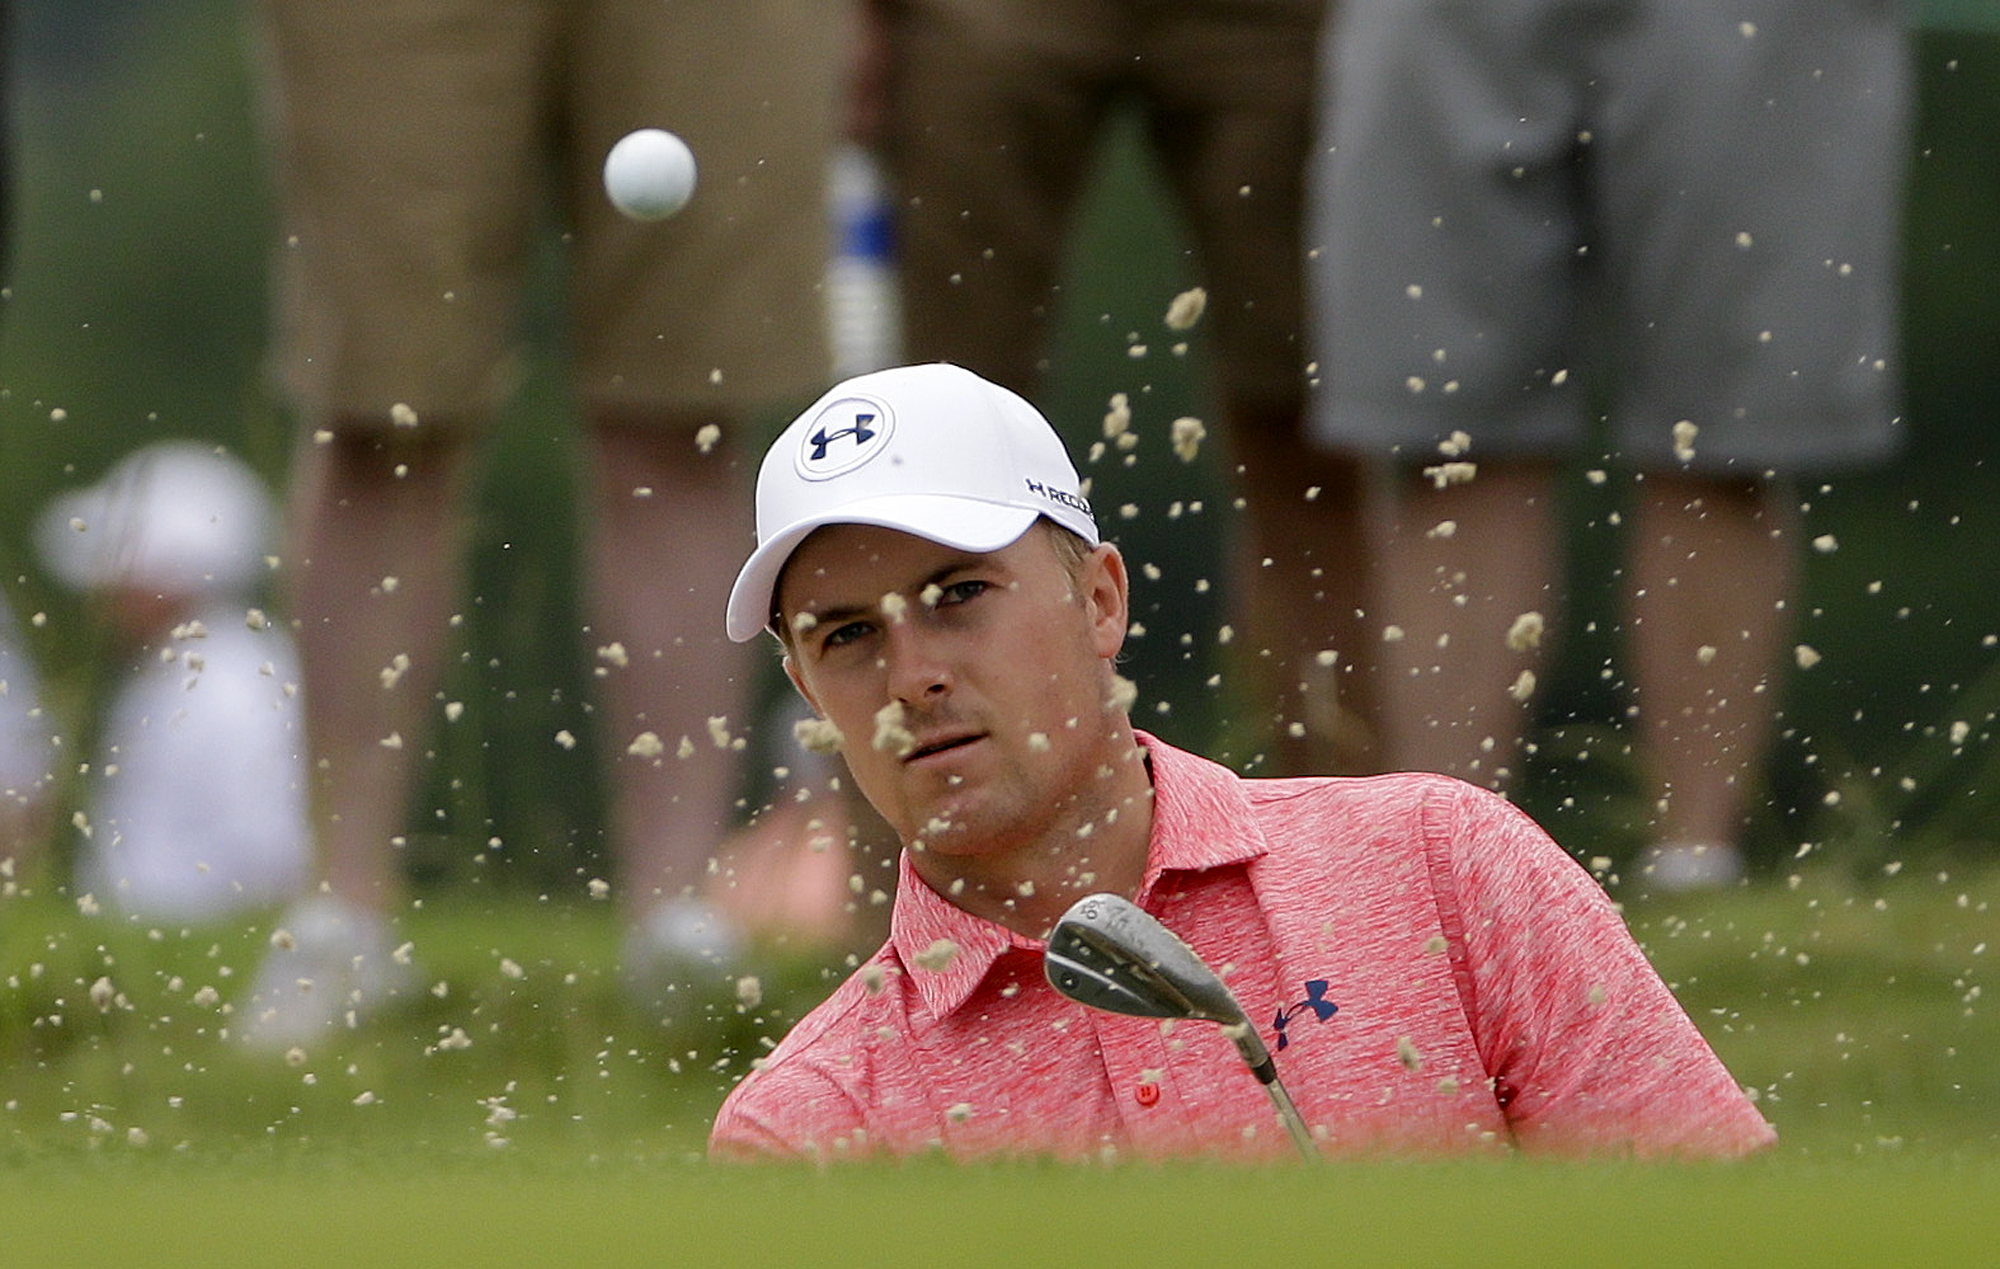 Jordan Spieth hits out of the bunker on the seventh hole during the rain delayed first round of the U.S. Open golf championship at Oakmont Country Club on Friday, June 17, 2016, in Oakmont, Pa. (AP Photo/Gene J. Puskar)